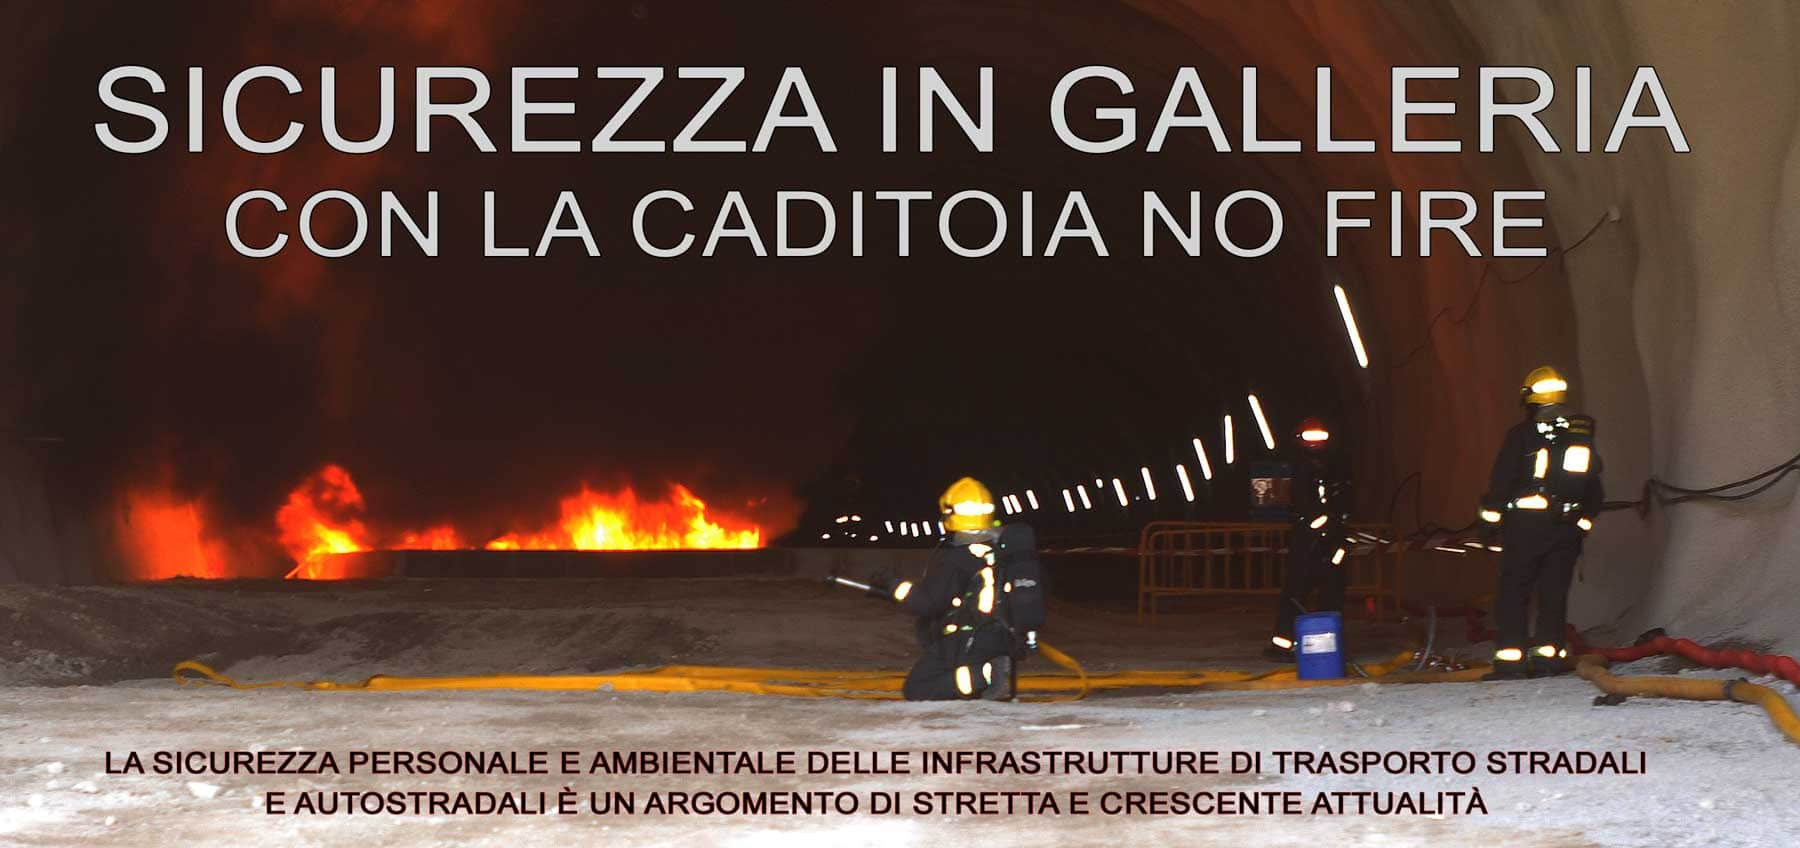 SICUREZZA IN GALLERIA CON LA CADITOIA NO FIRE